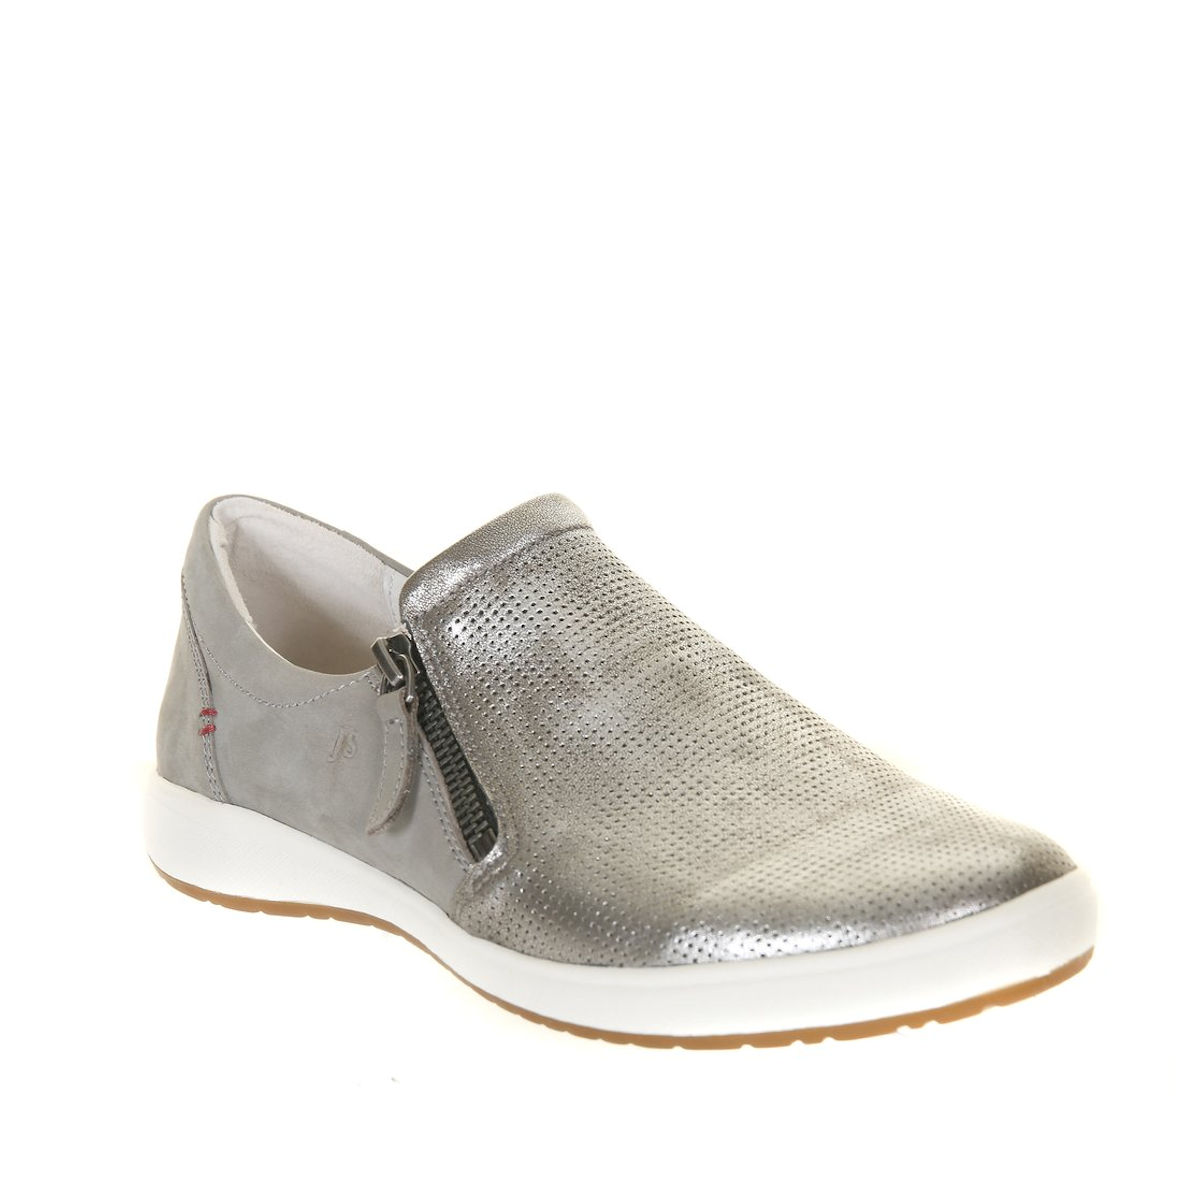 Josef Seibel Caren 22 - Womens Slip-on Grey Platin Combi Fashion Trainer